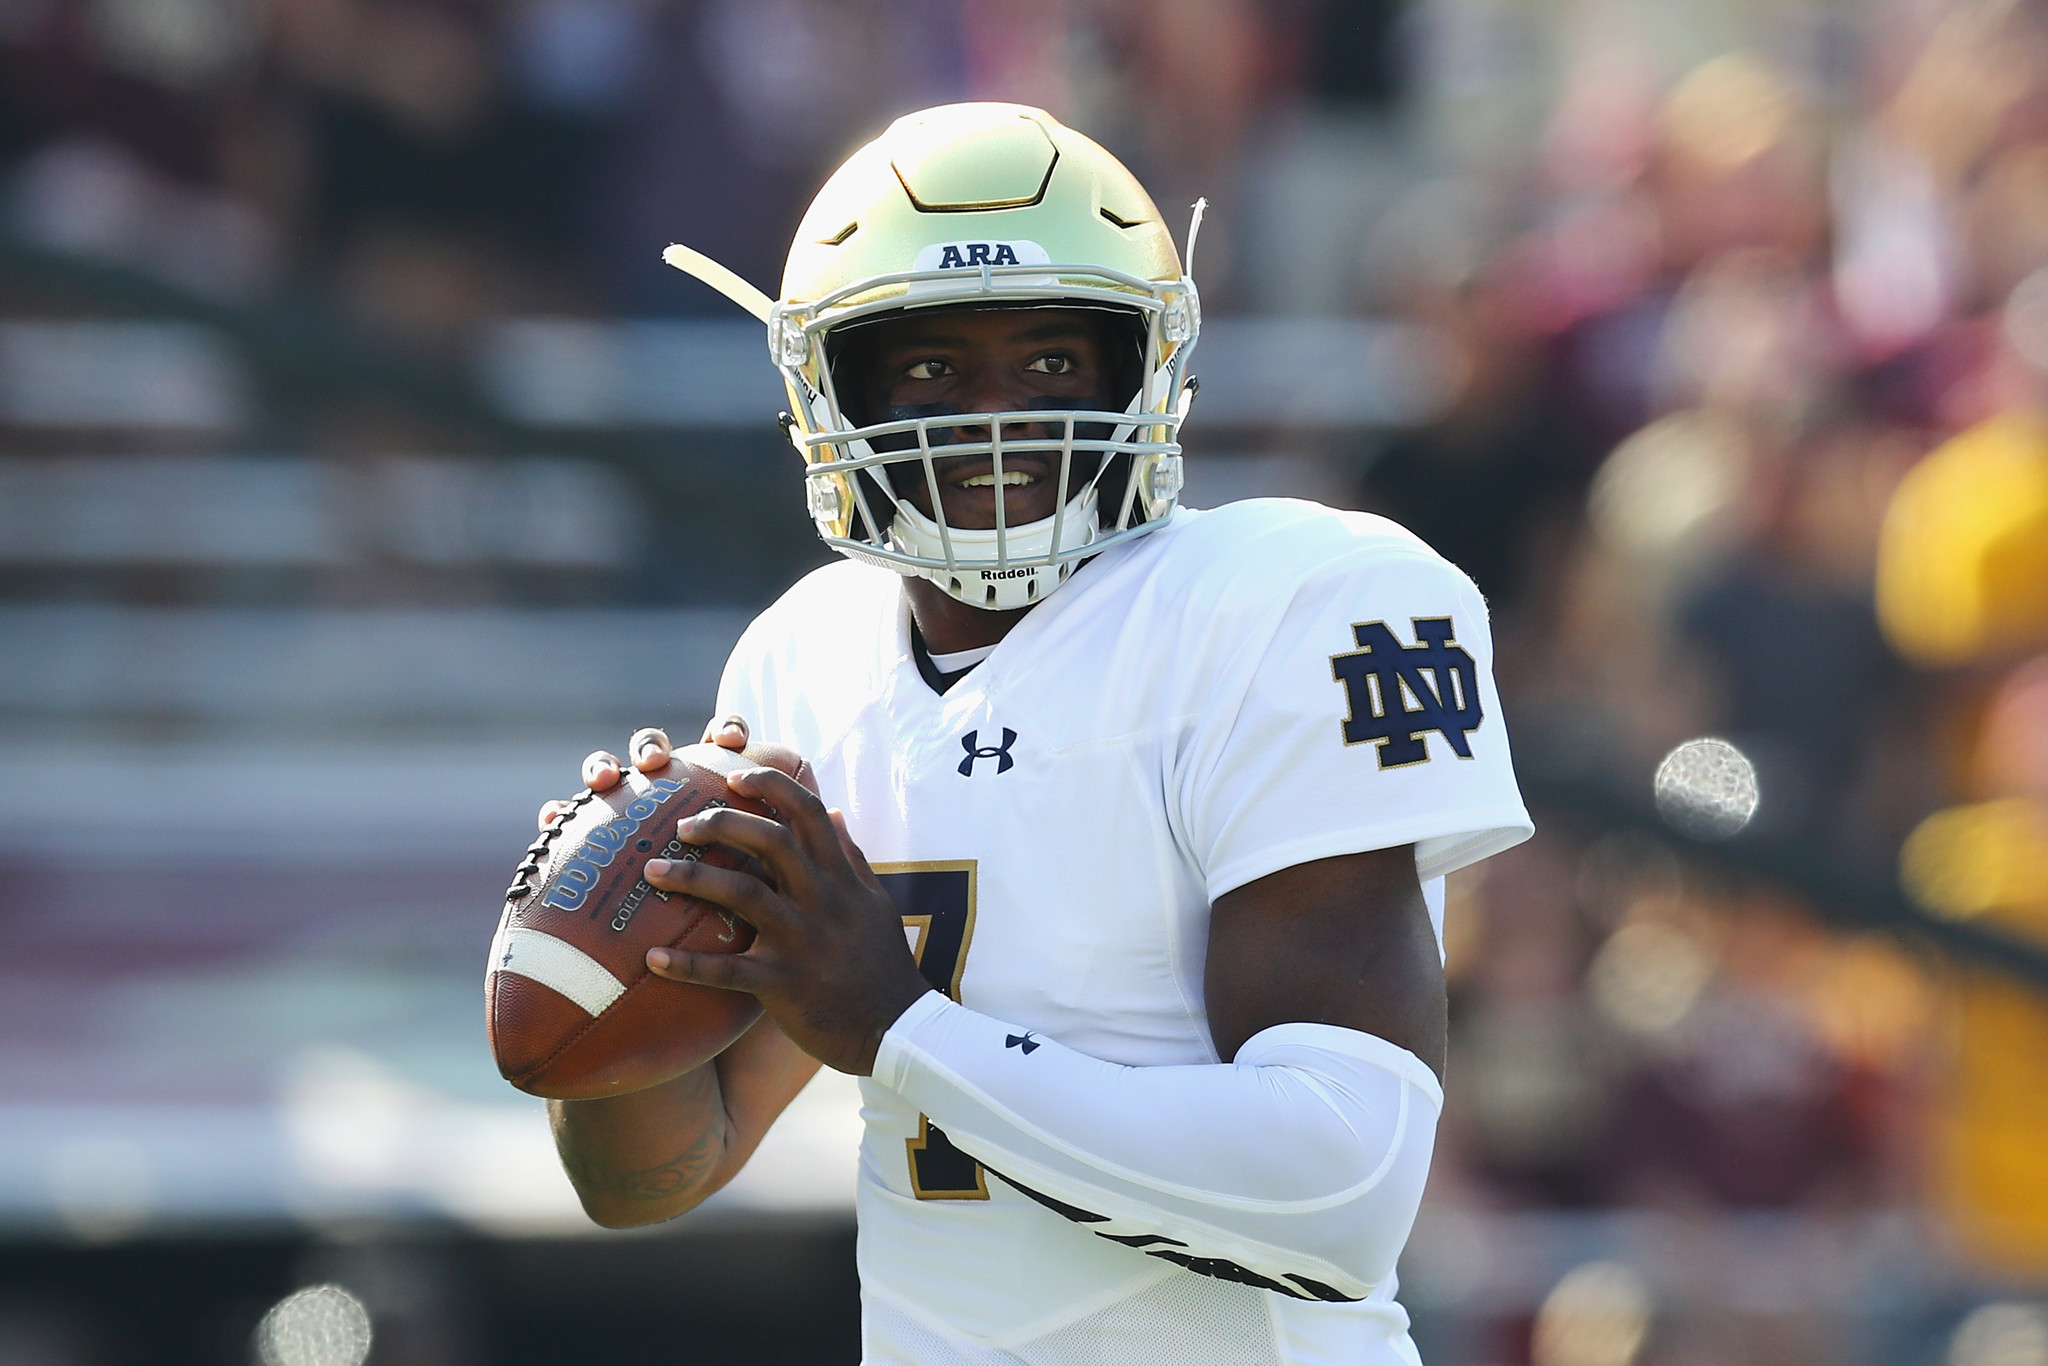 Ct-notre-dame-michigan-state-football-spt-0923-20170922